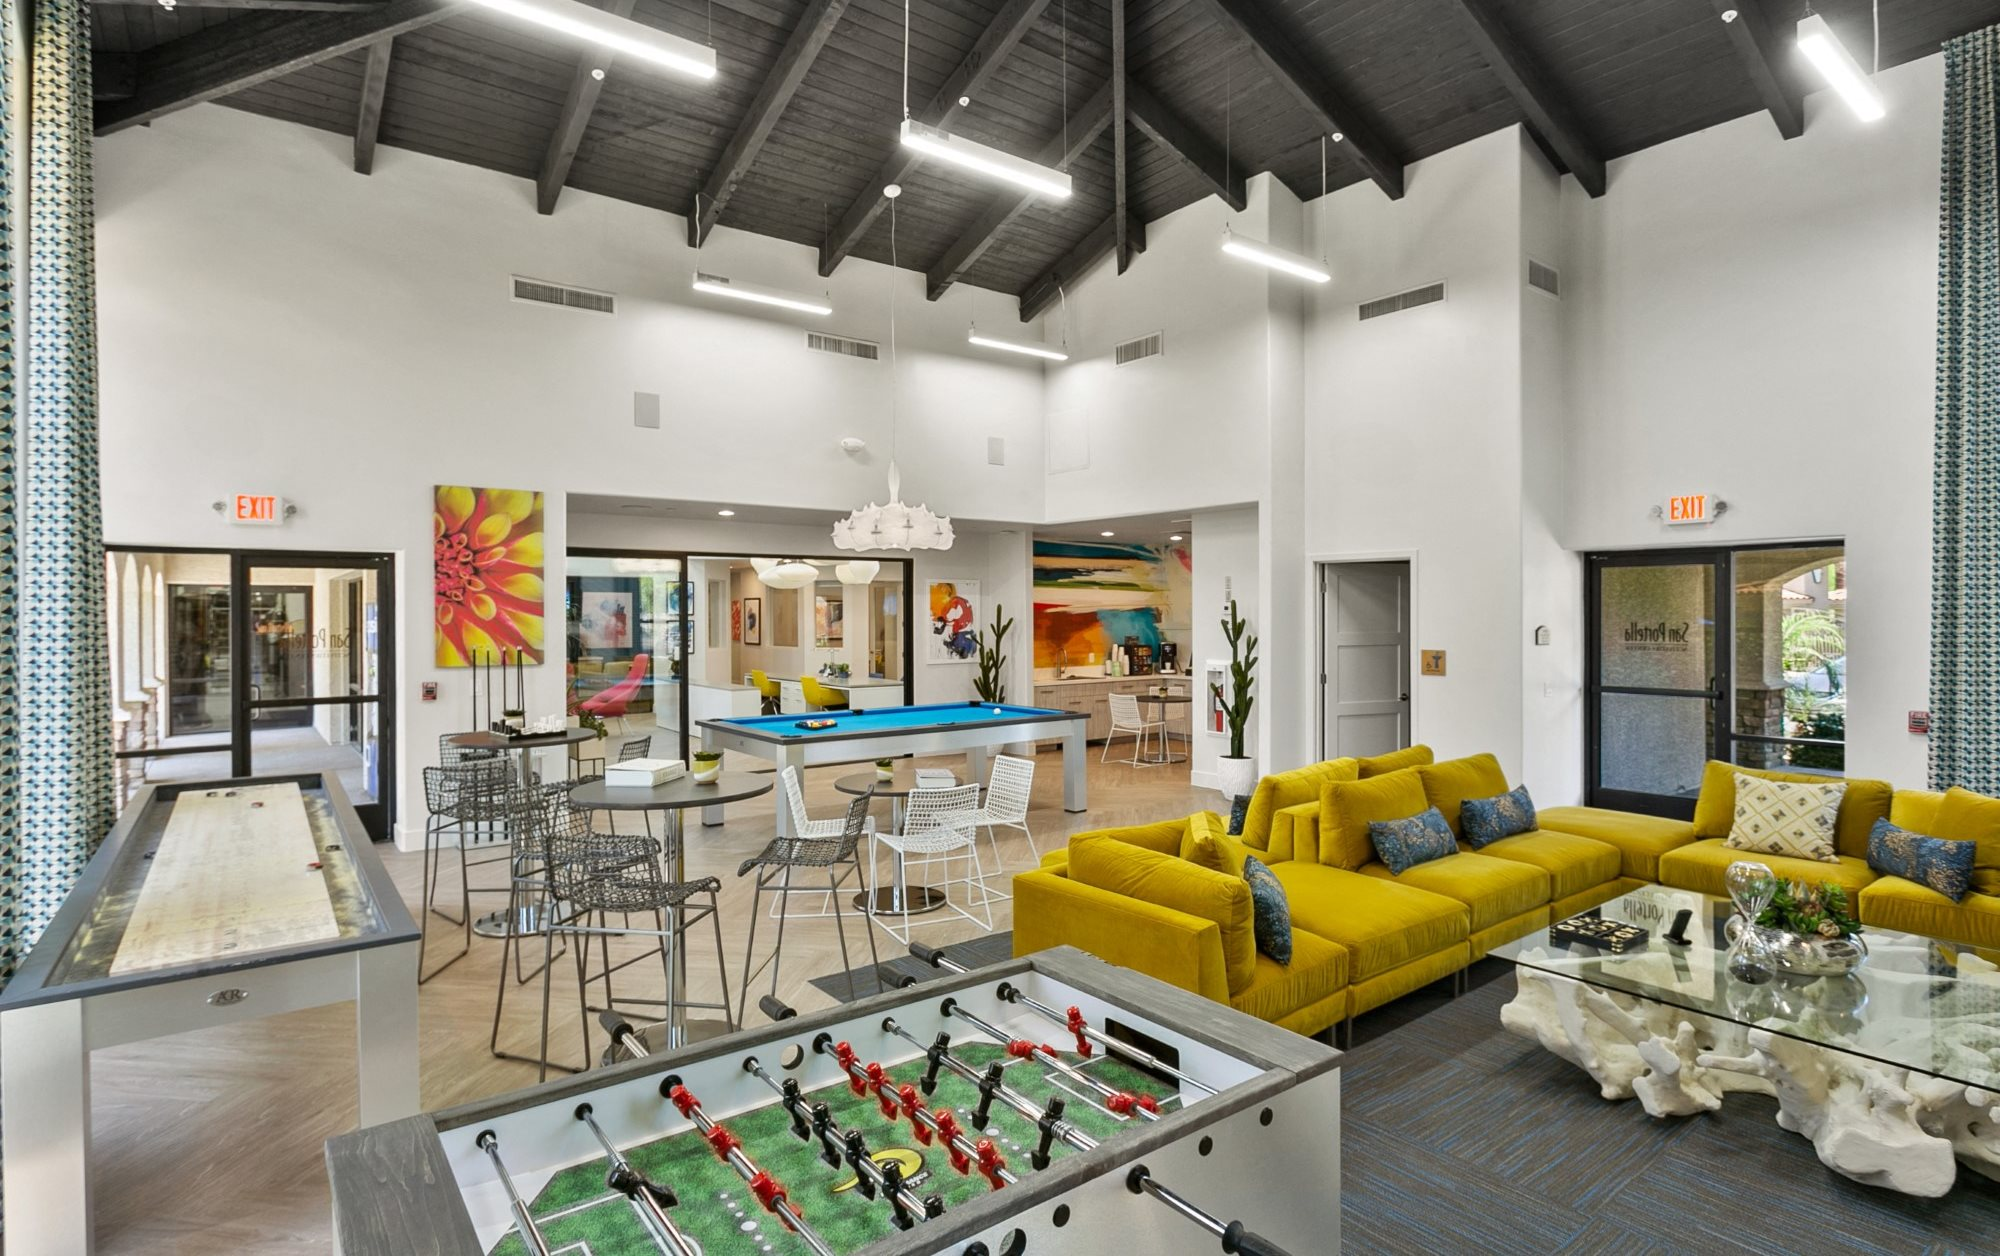 San Portella Apartments Recreation Room